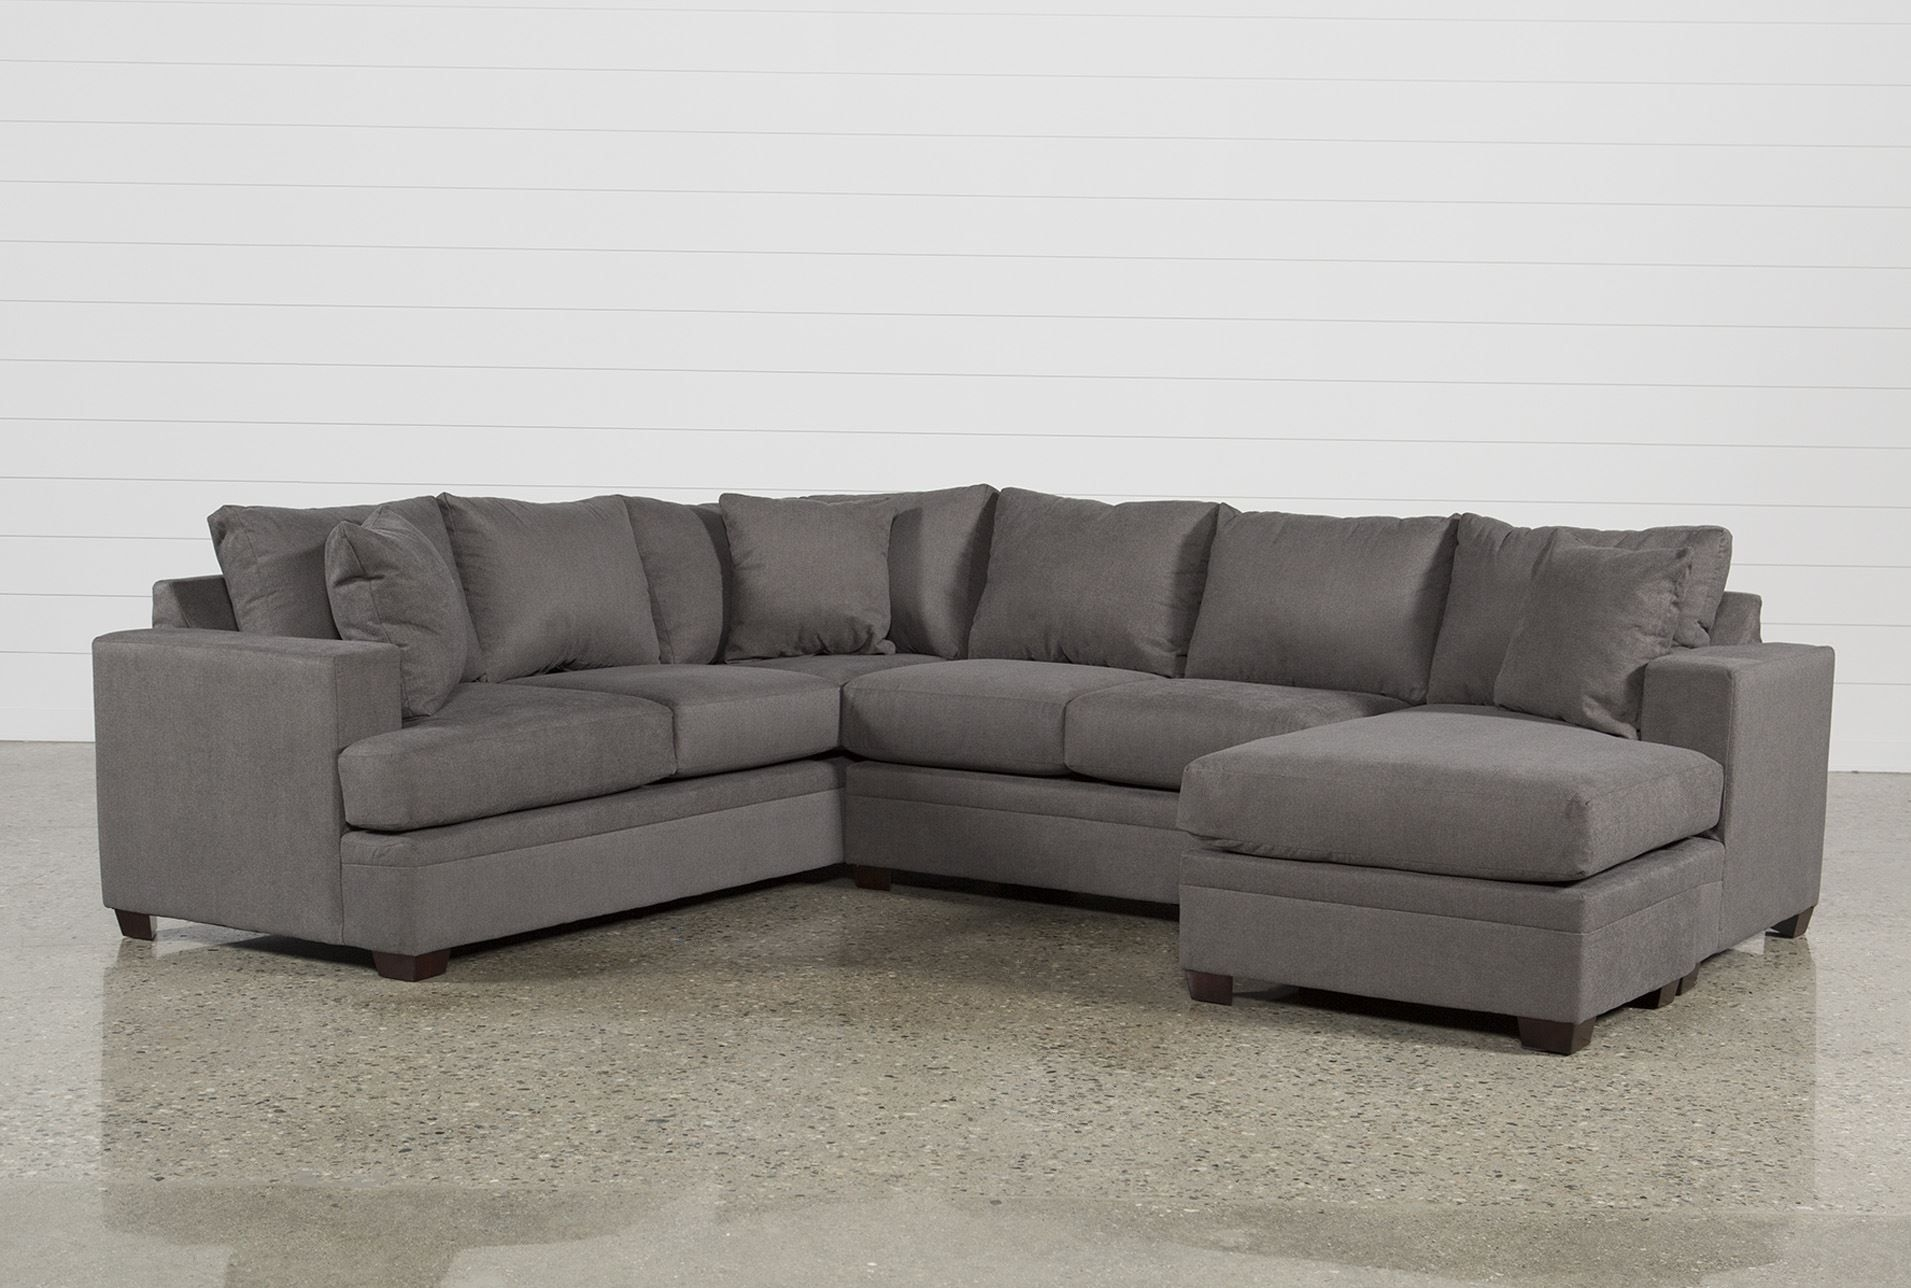 Kerri 2 Piece Sectional W/raf Chaise In 2018 | Products | Pinterest regarding Mcculla Sofa Sectionals With Reversible Chaise (Image 16 of 30)